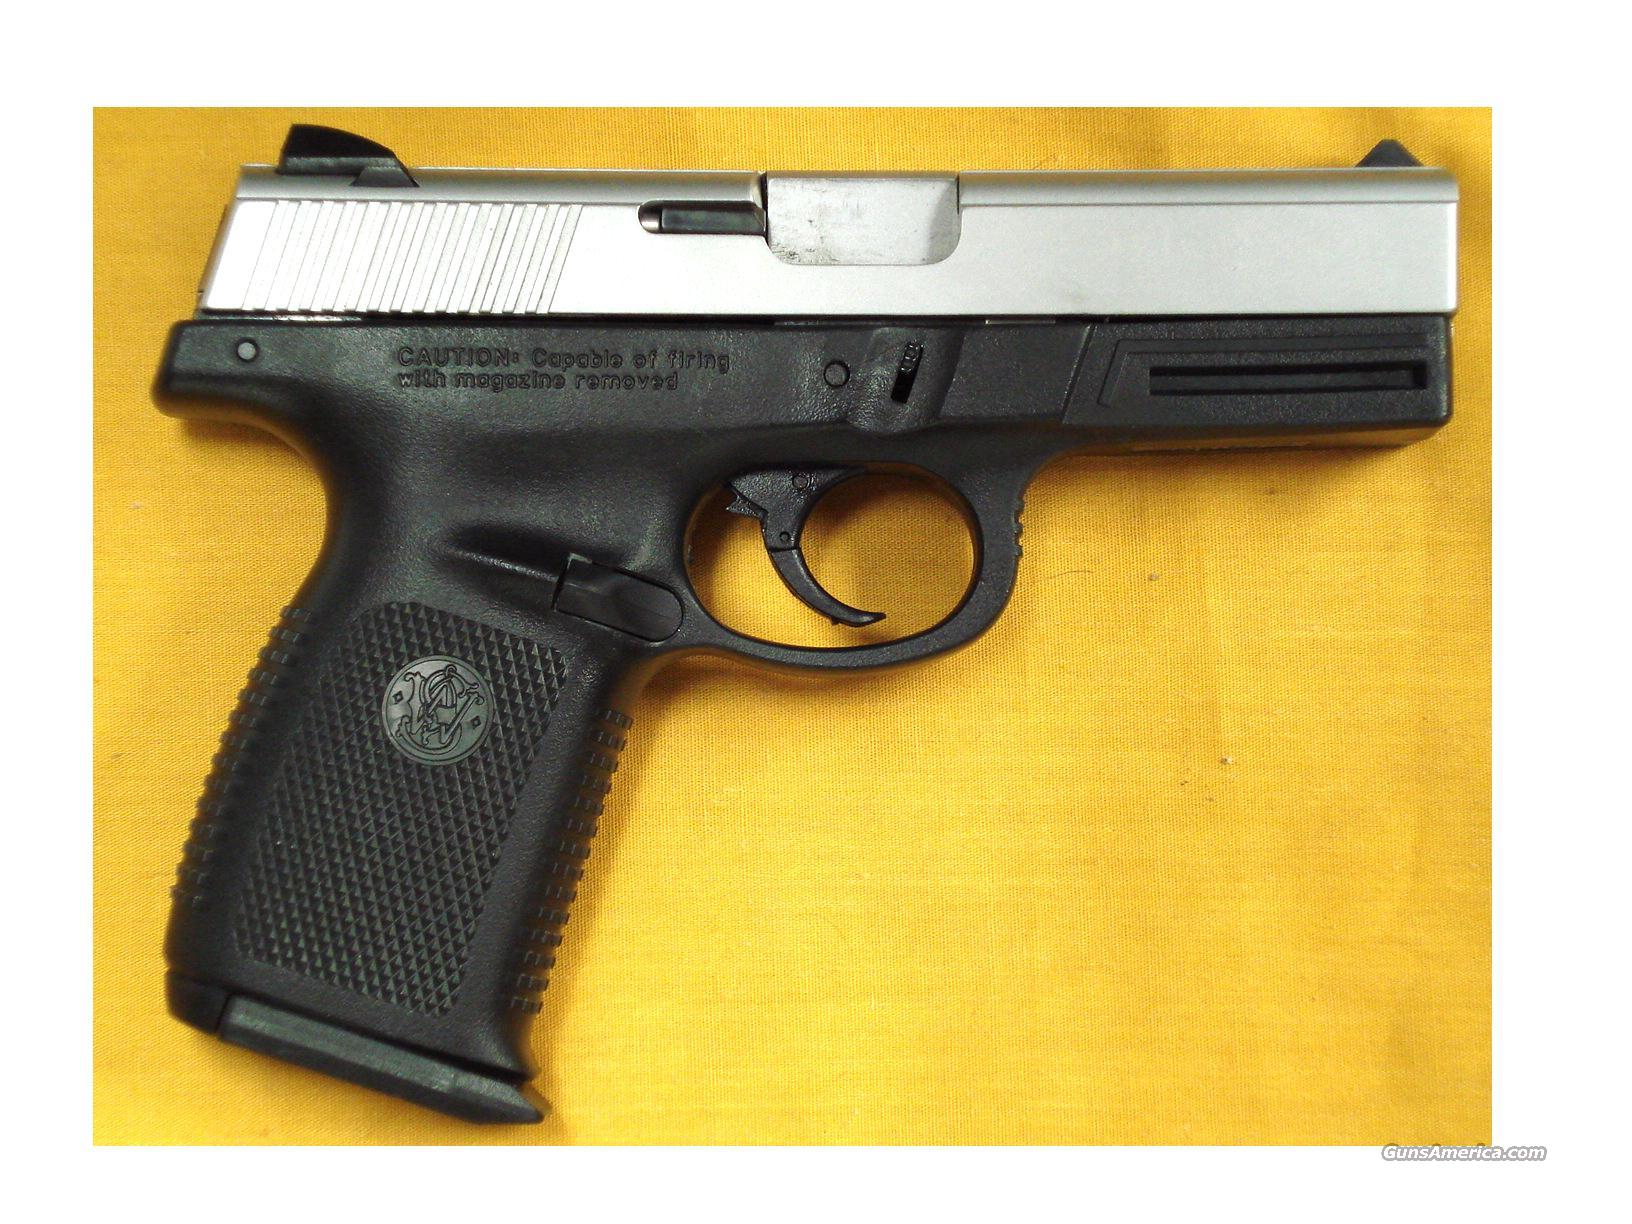 "S&W SW40VE .40S&W 4"" BARREL  Guns > Pistols > Smith & Wesson Pistols - Autos > Polymer Frame"